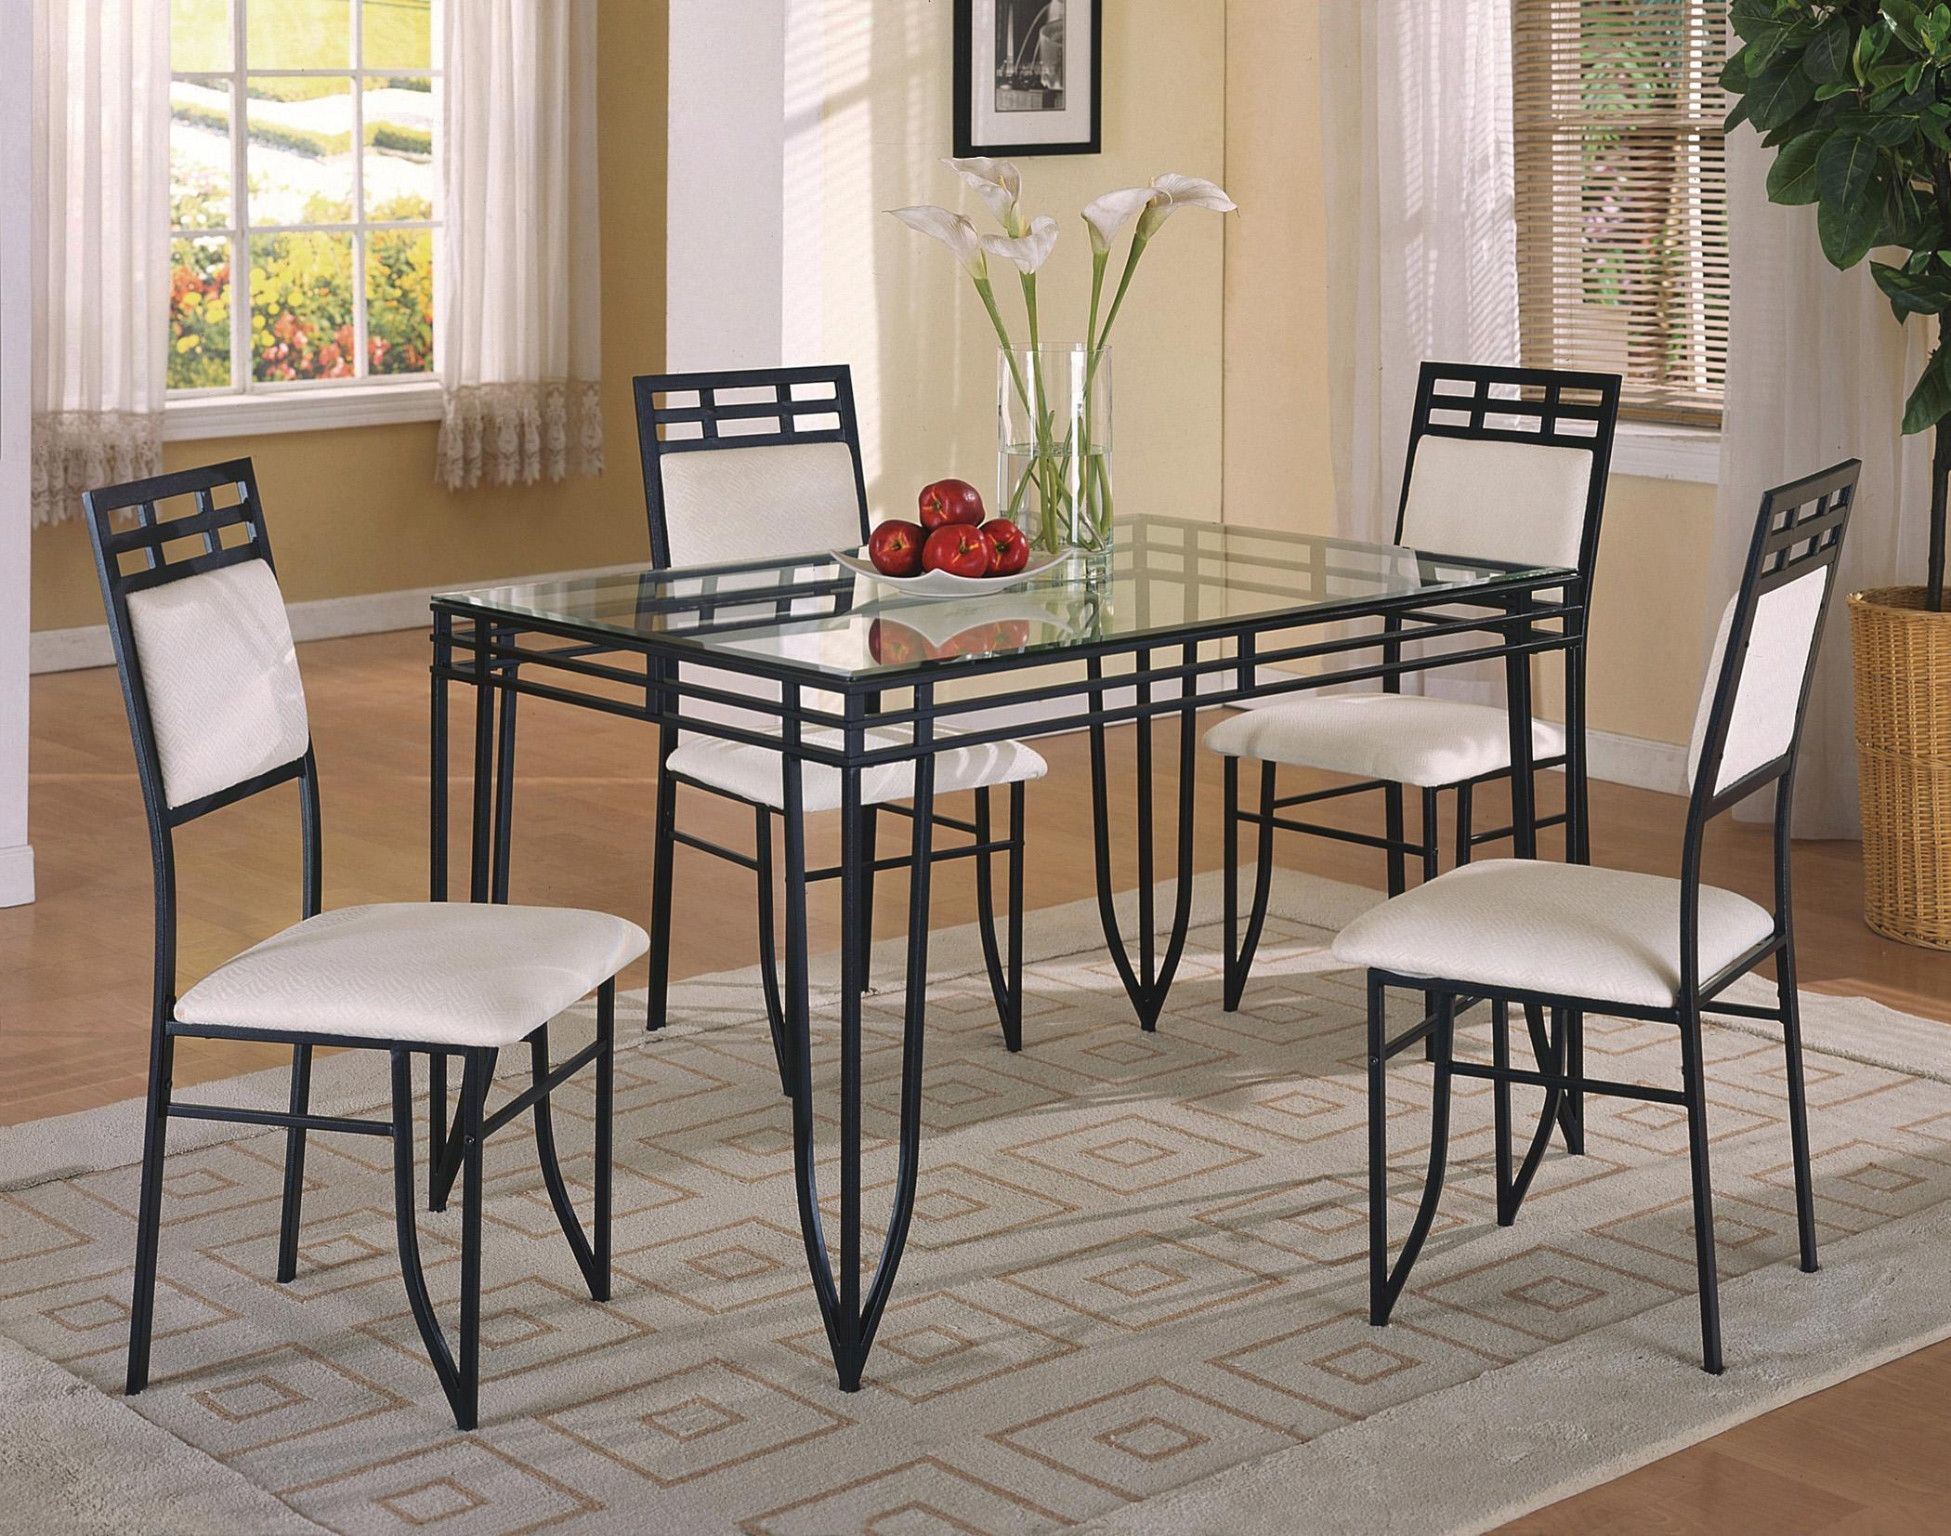 Matrix 5 Piece Dinette Table and 4 Chairs $299 00 Glass Top Table